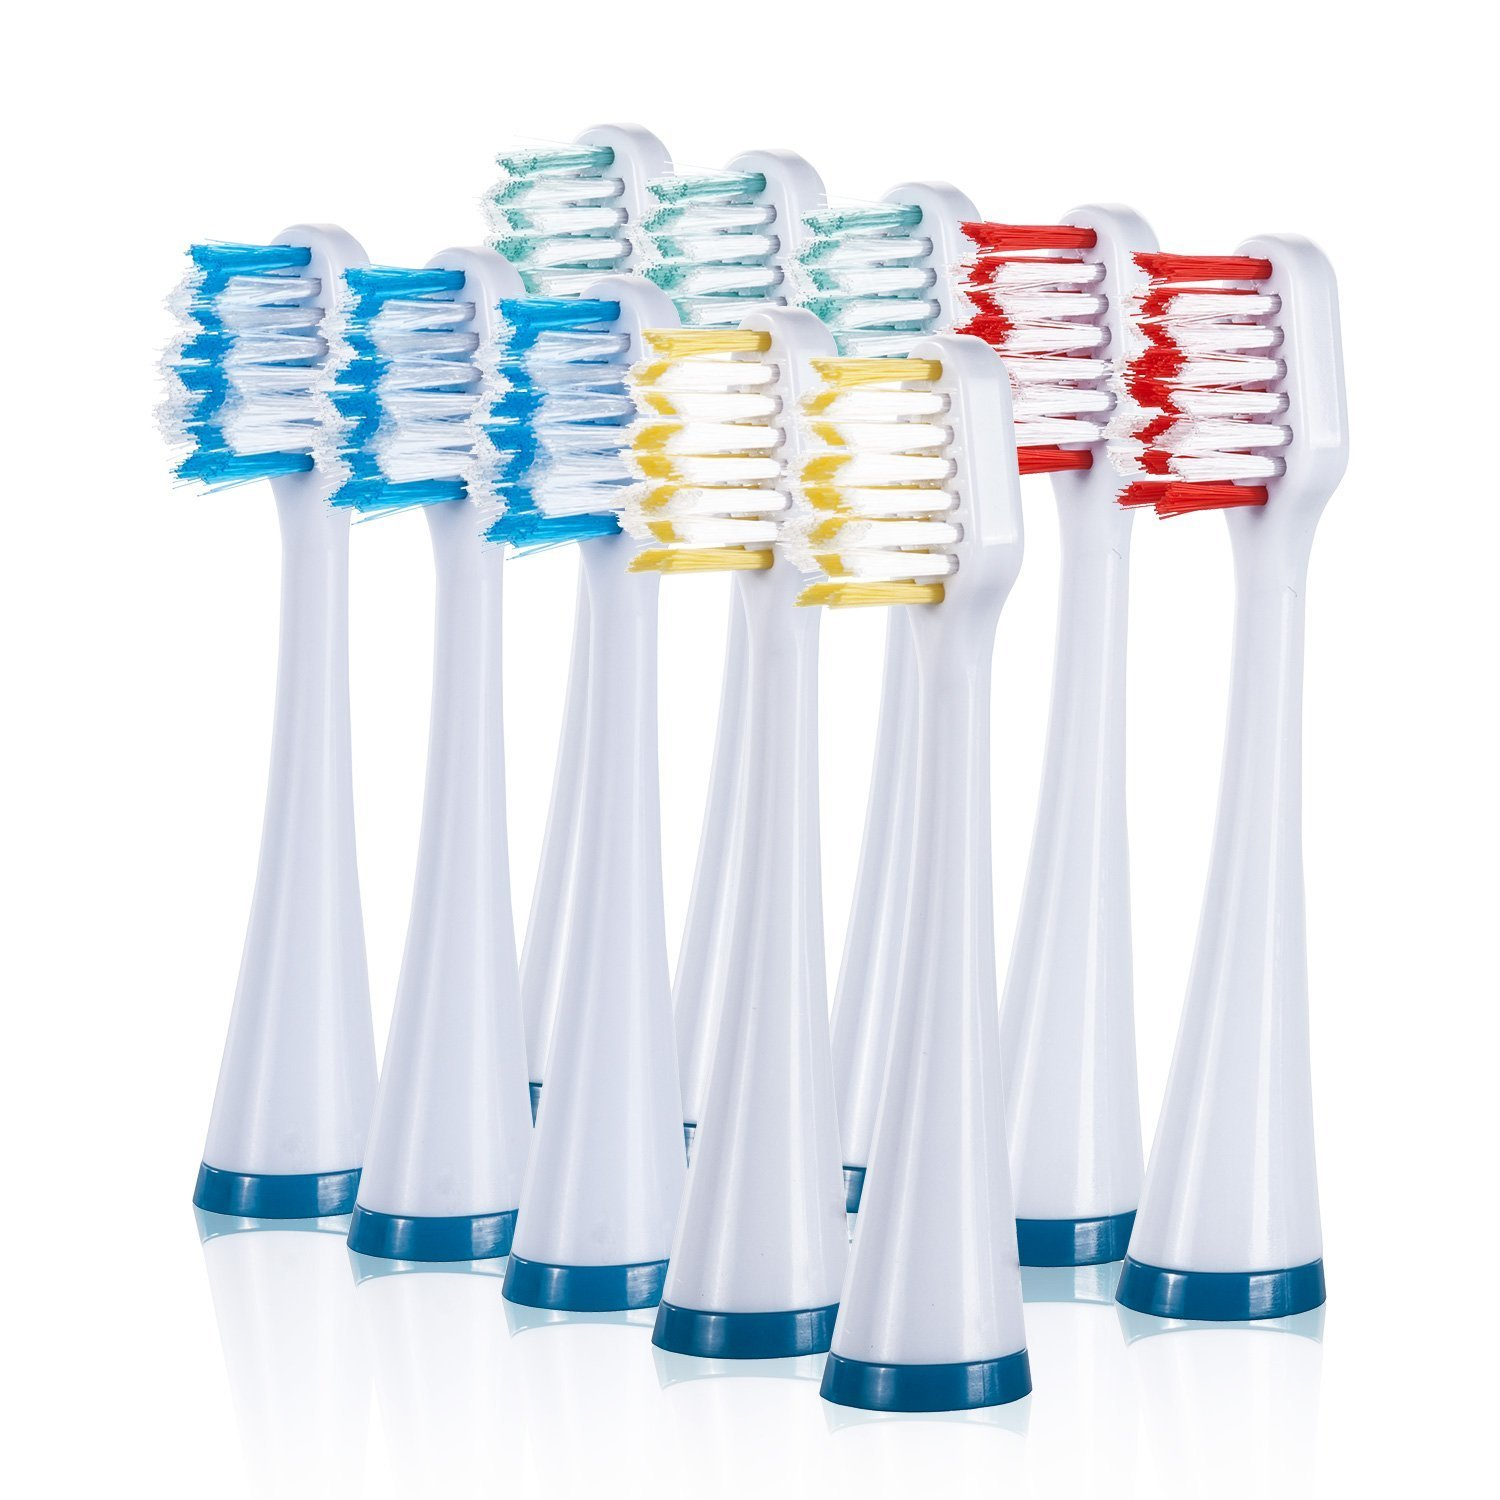 Wellness WE2PRO Replacement Heads for WE6200 Sonic Electric Toothbrush (10 Pack) Wellness Oral Care